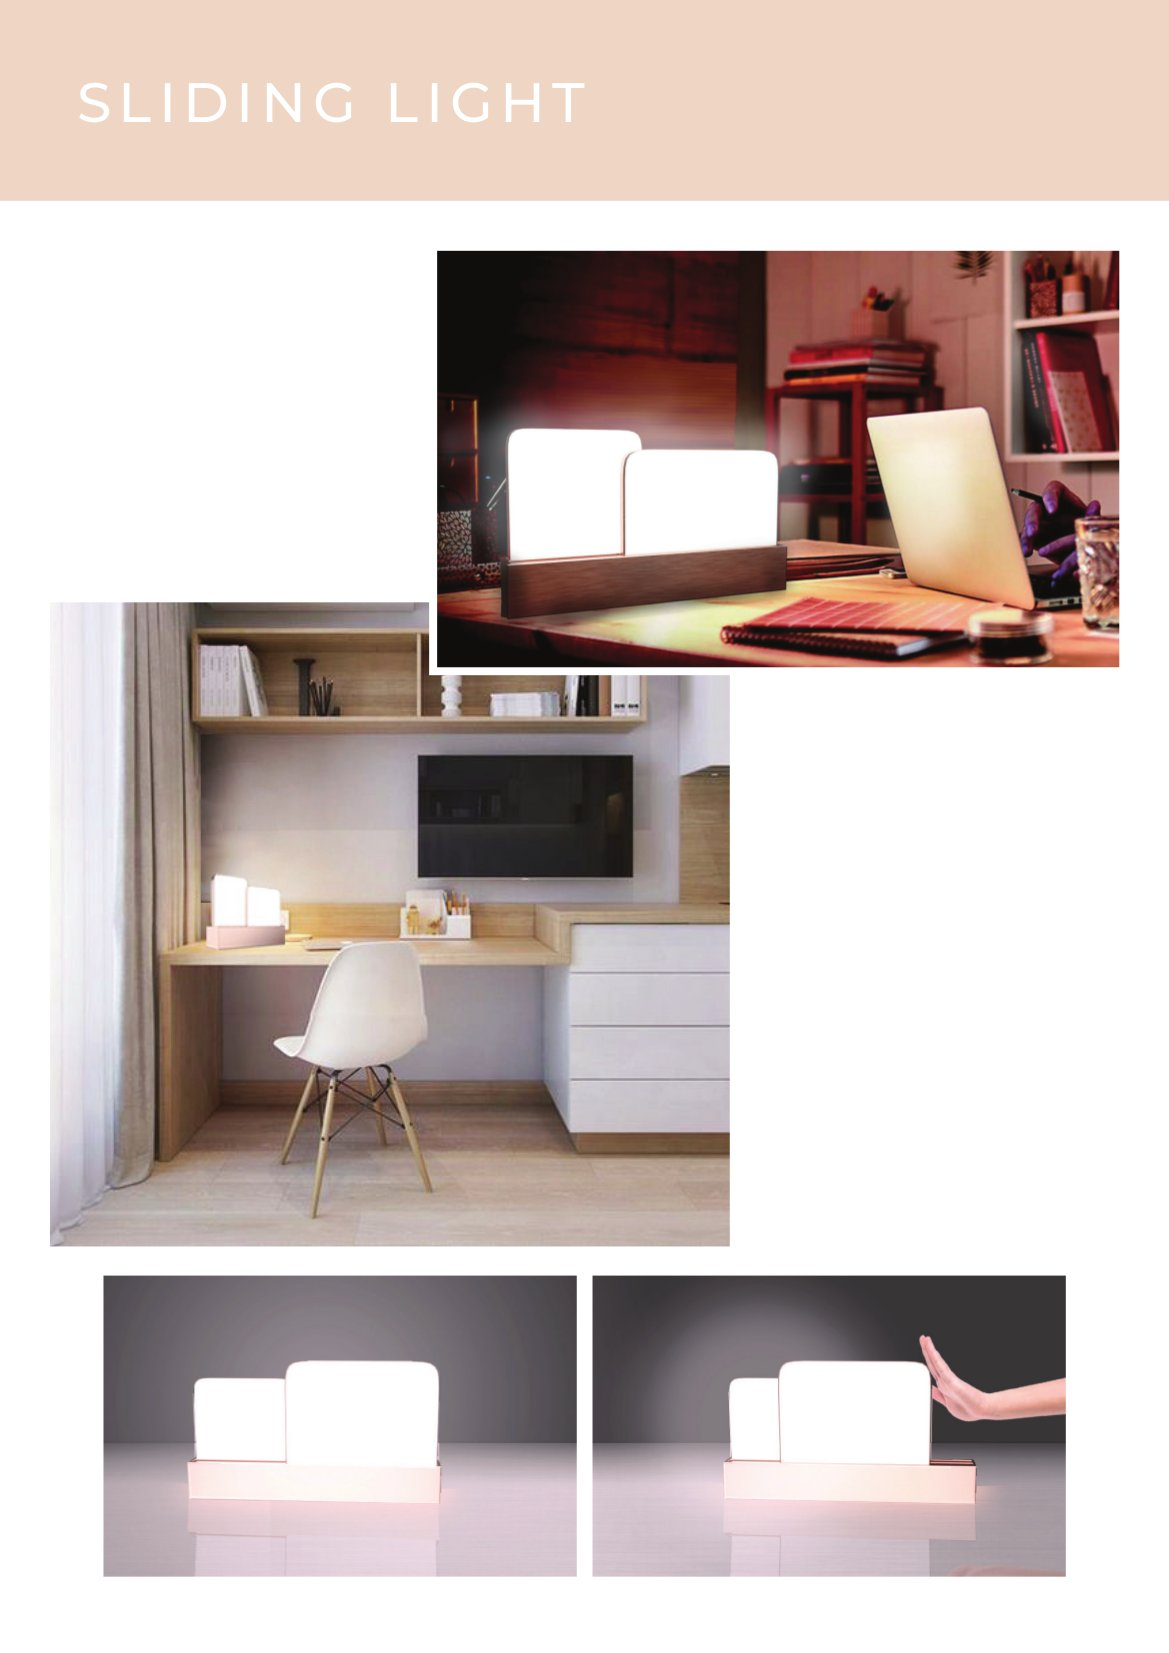 Planches_FINAL_Sliding Light_SONG_Minkyung 1